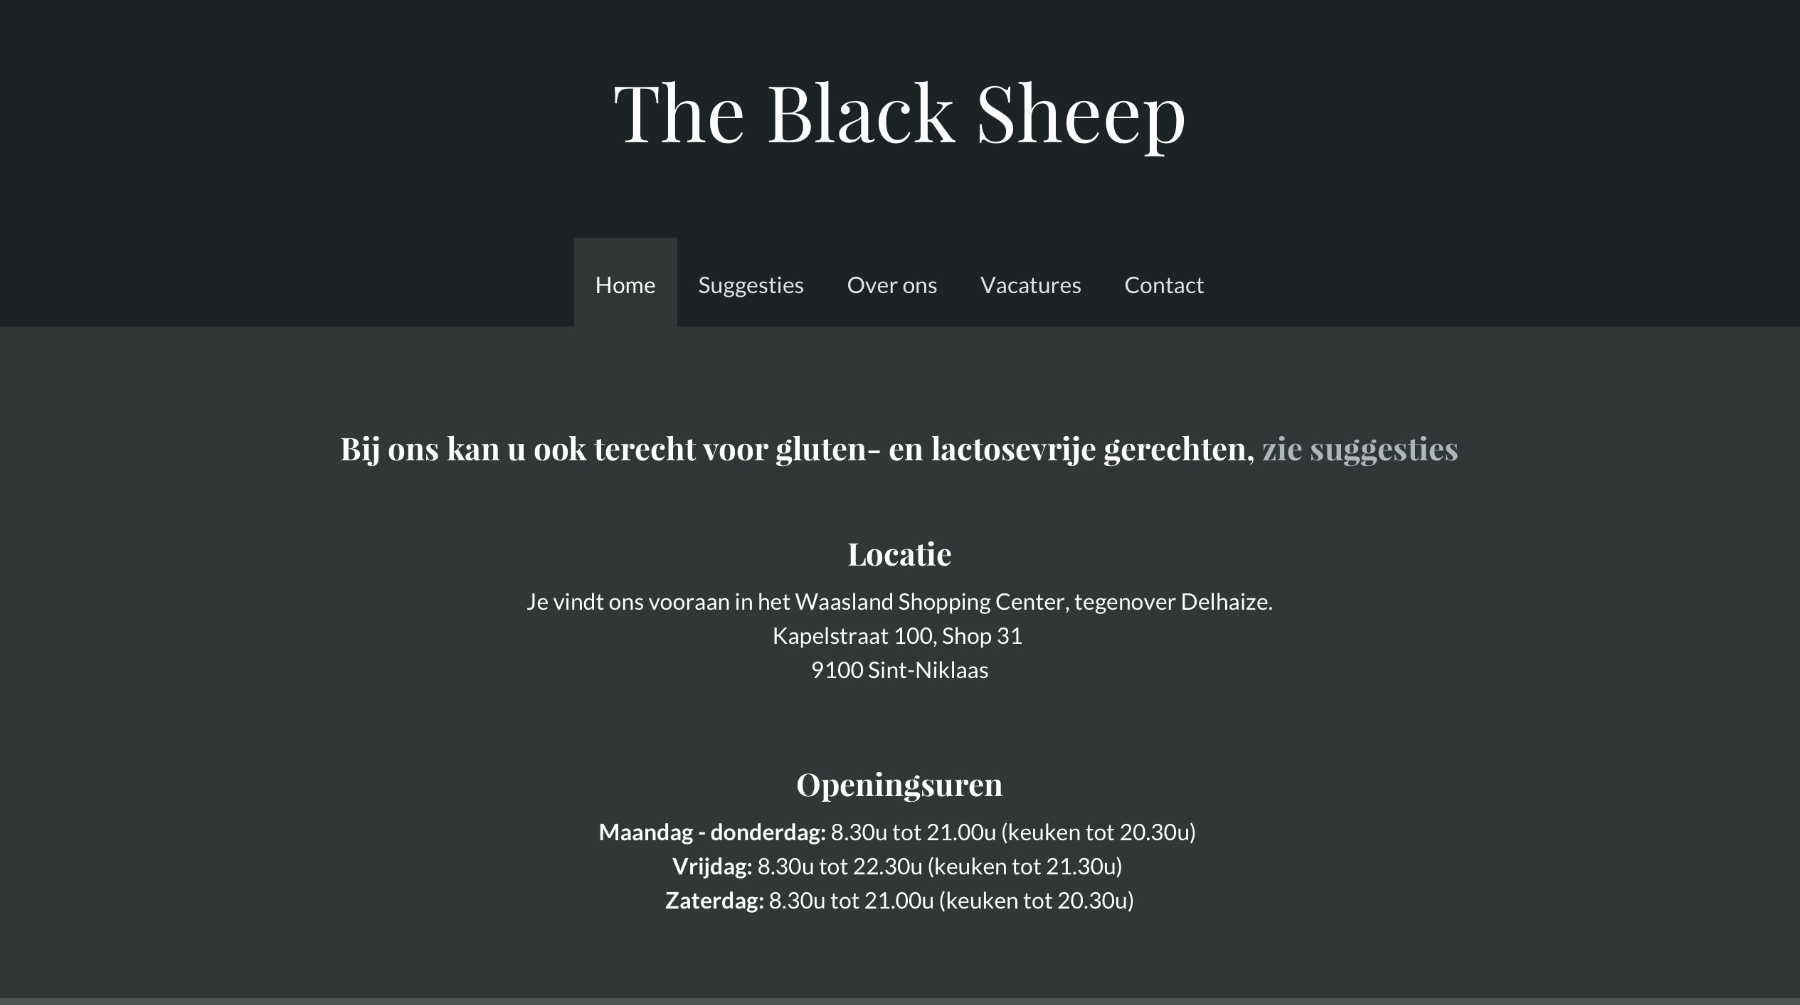 afbeelding van de website van The Black Sheep